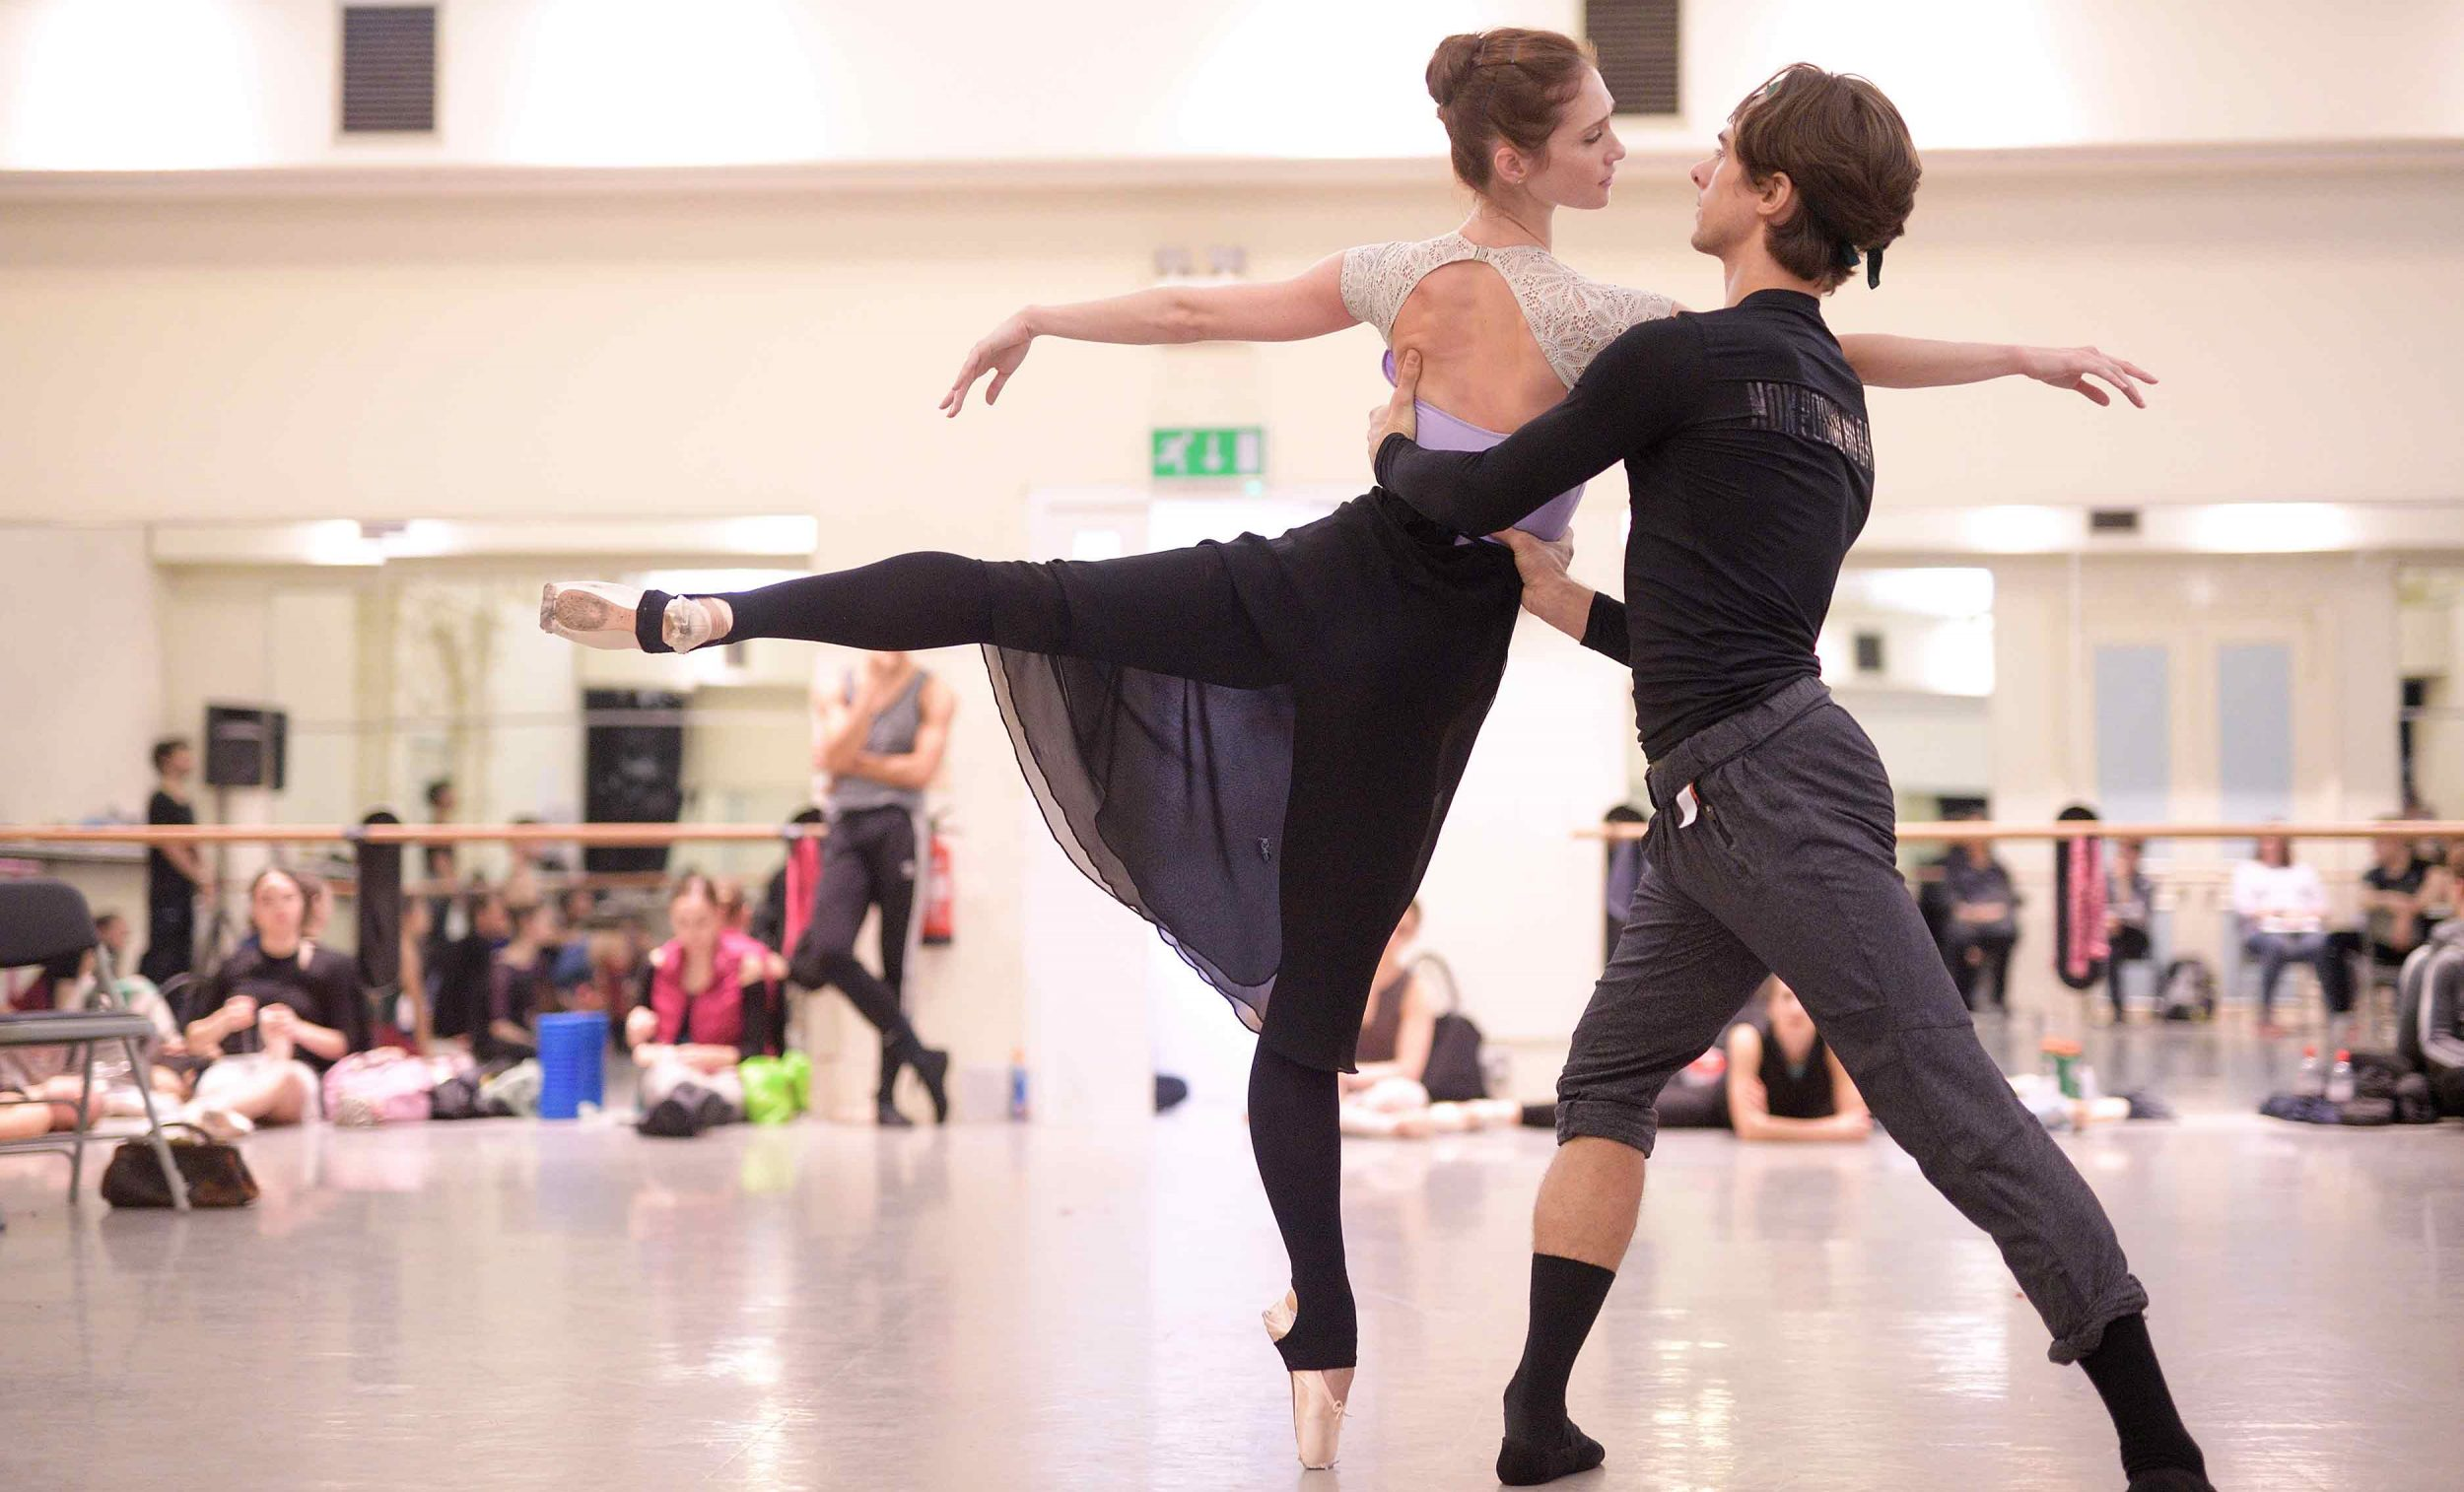 Alison-McWhinney-and-Francesco-Gabriele-Frola-in-rehearsals-for-Manon-(c)-Laurent-Liotardo-(2)_WEB